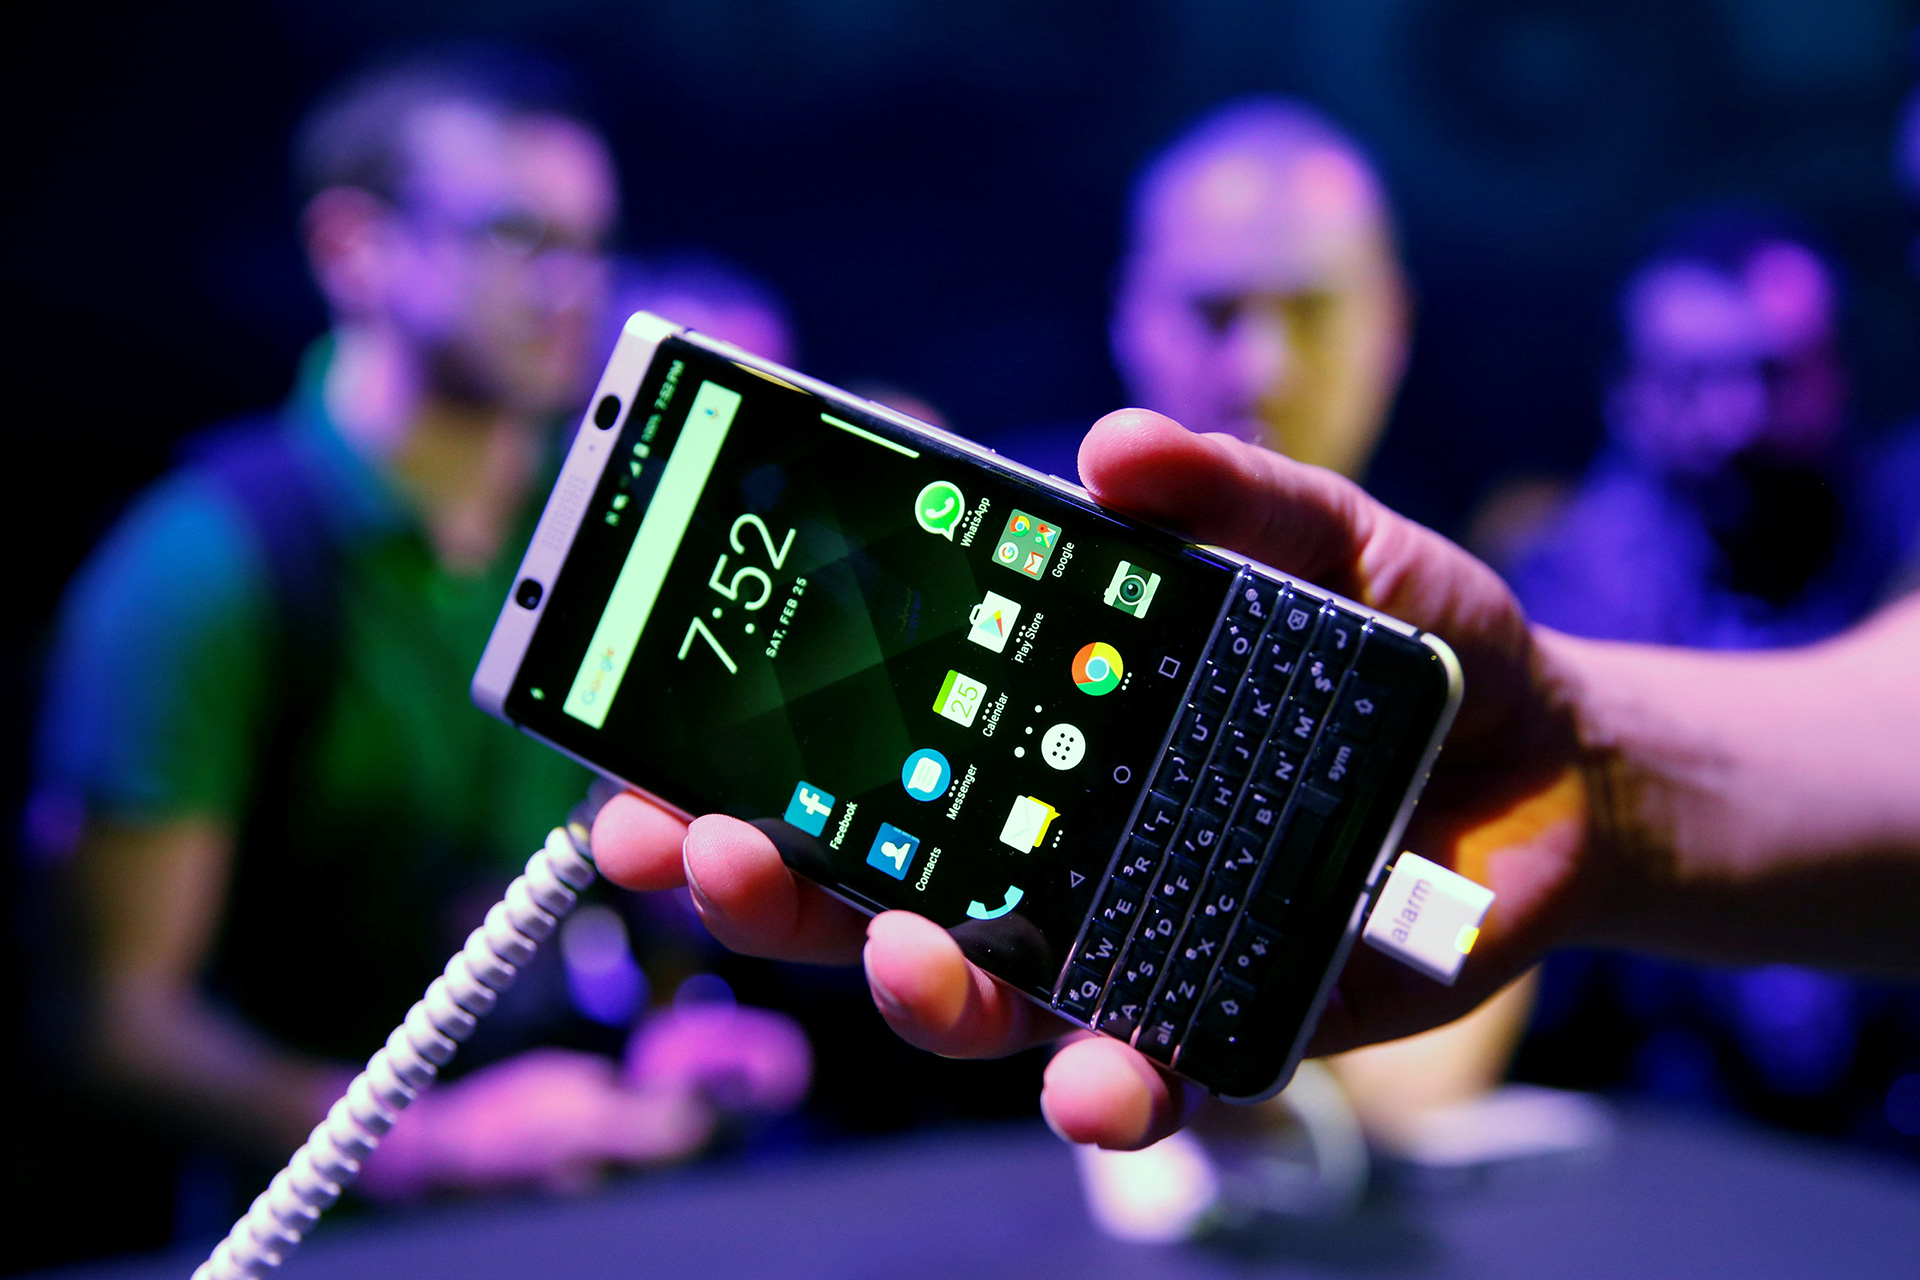 BlackBerry también intenta renacer con su KeyOne (Foto: Albert Gea / Reuters)